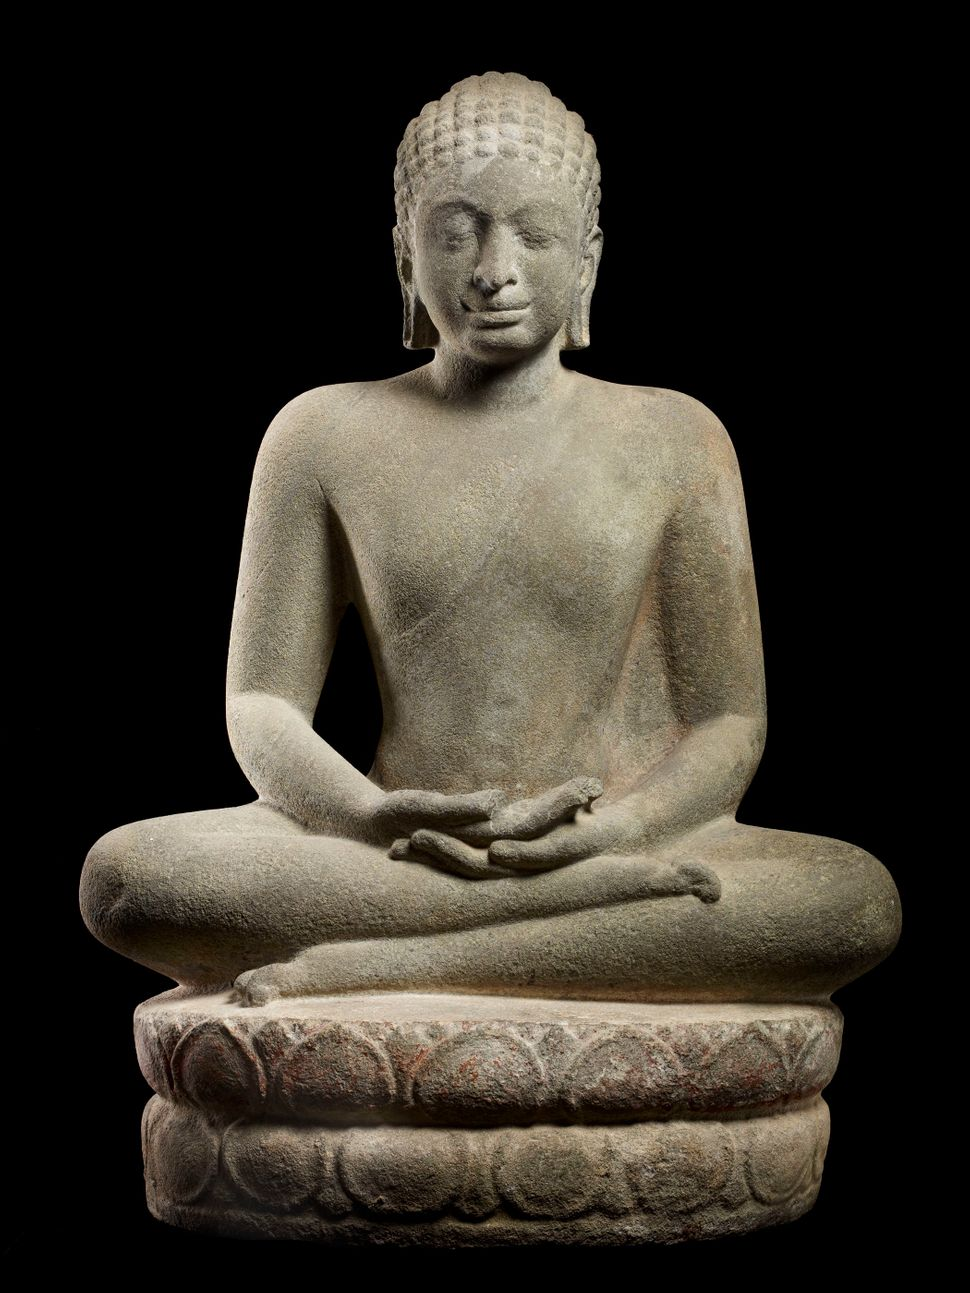 Buddha in Meditation, Sandstone, Lent by Musée National des Arts Asiatiques–Guimet, Paris, Photo: Thierry Ollivier